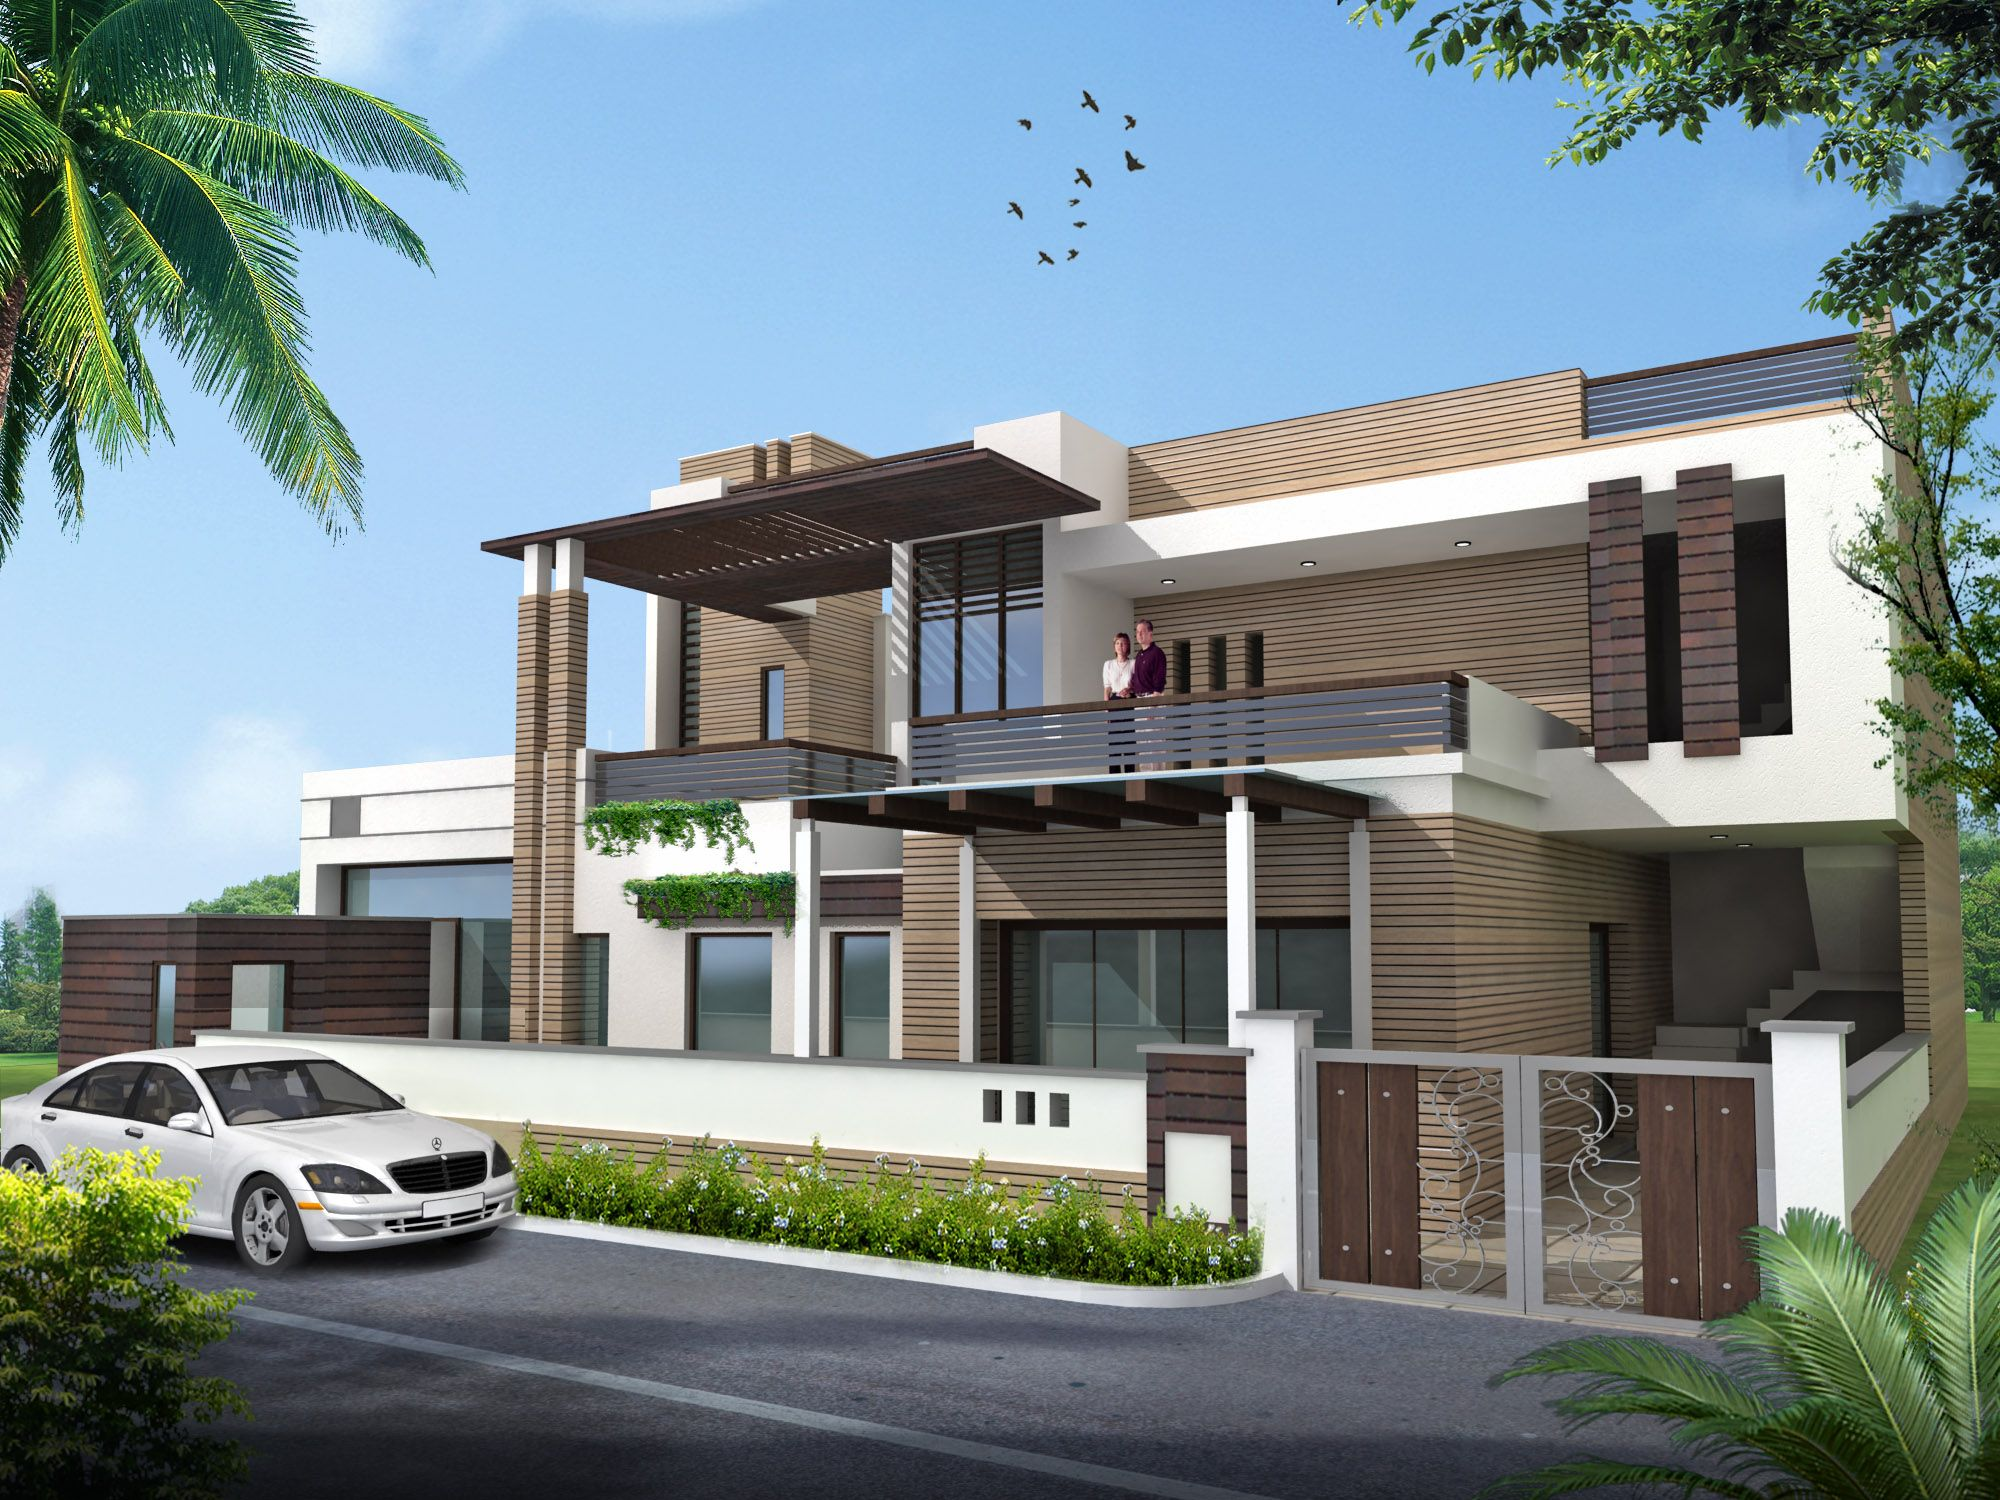 Image for House Designs Outside Awesome Ideas | Ideas for the ...